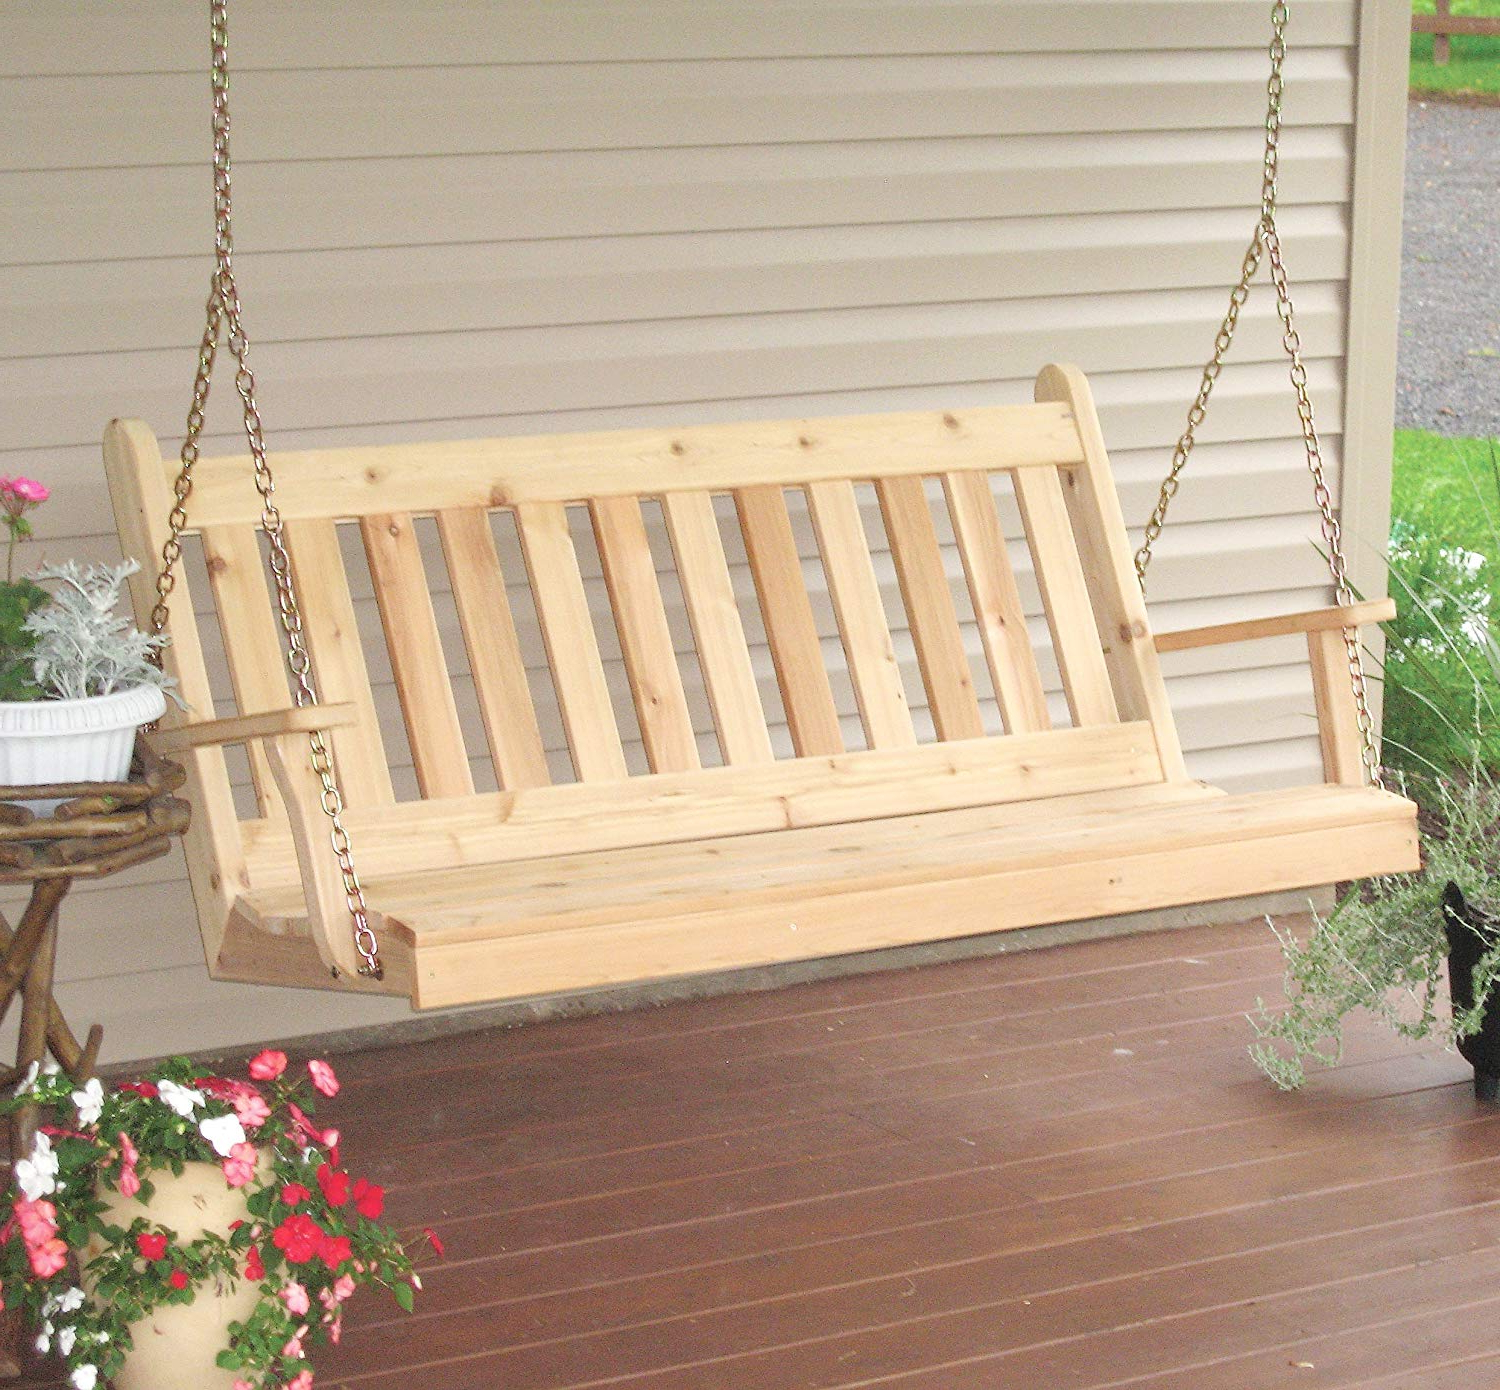 Newest Aspen Tree Interiors Cedar Porch Swing, Amish Outdoor Hanging Porch Swings, Patio Wooden 2 Person Seat Swinging Bench, Weather Resistant Western Red In Patio Hanging Porch Swings (View 8 of 30)